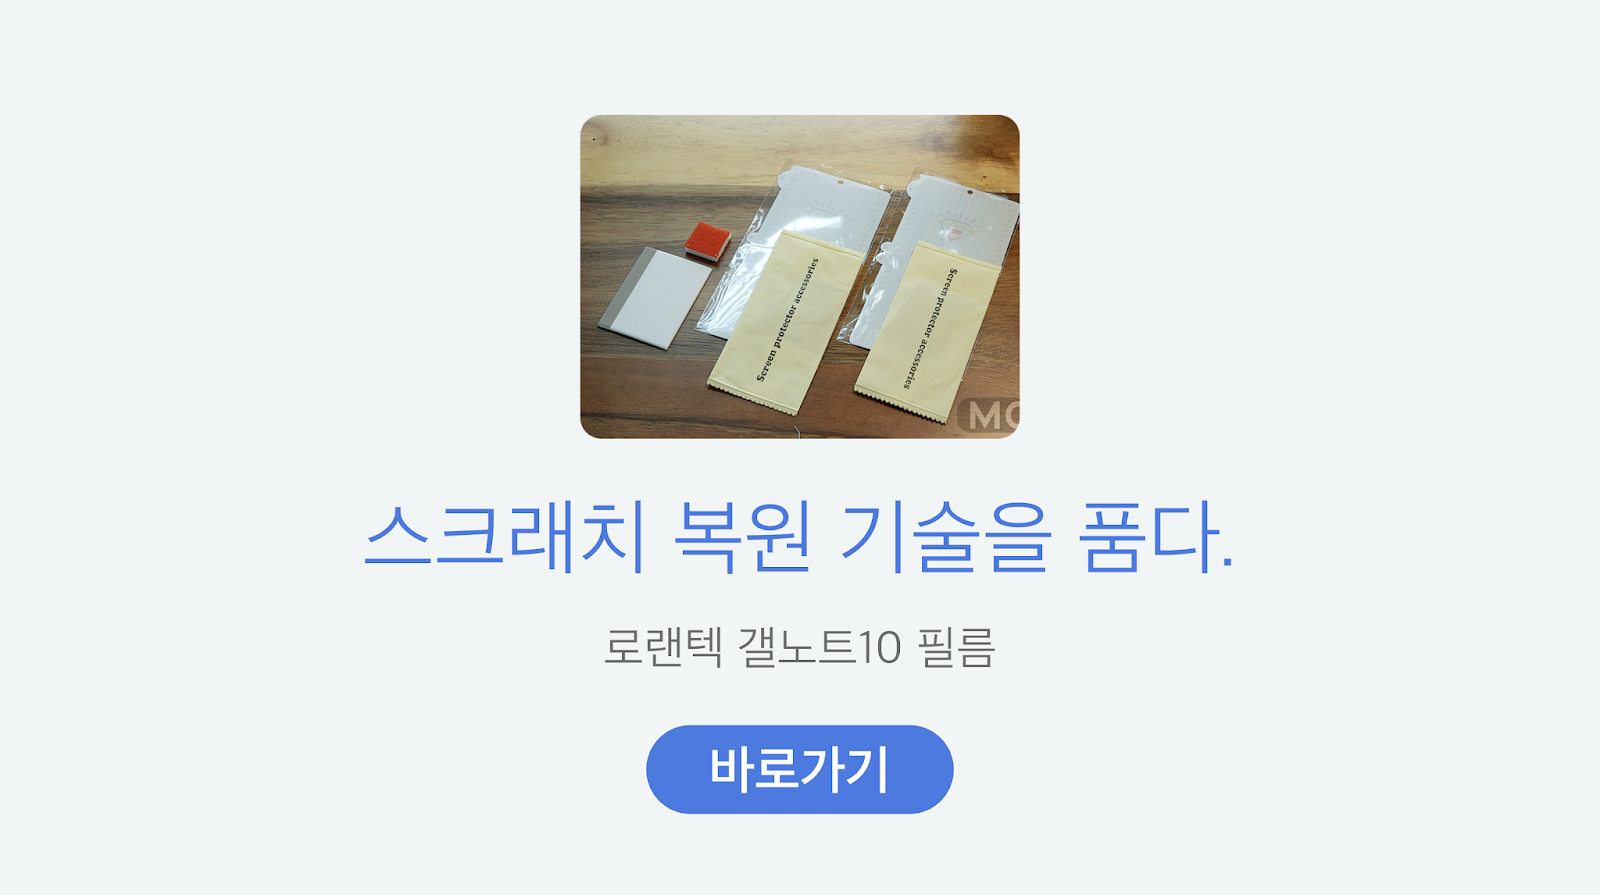 https://search.shopping.naver.com/detail/detail.nhn?nv_mid=20688629619&cat_id=50004595&frm=NVSCPRO&query=로랜텍+노트10&NaPm=ct%3Djztnd7f4%7Cci%3D7b33f794a34a6809466c45df9f220139b31a0952%7Ctr%3Dslsl%7Csn%3D95694%7Chk%3D12f66be2639eae721d0a4341d44fa4bc1700ffe1